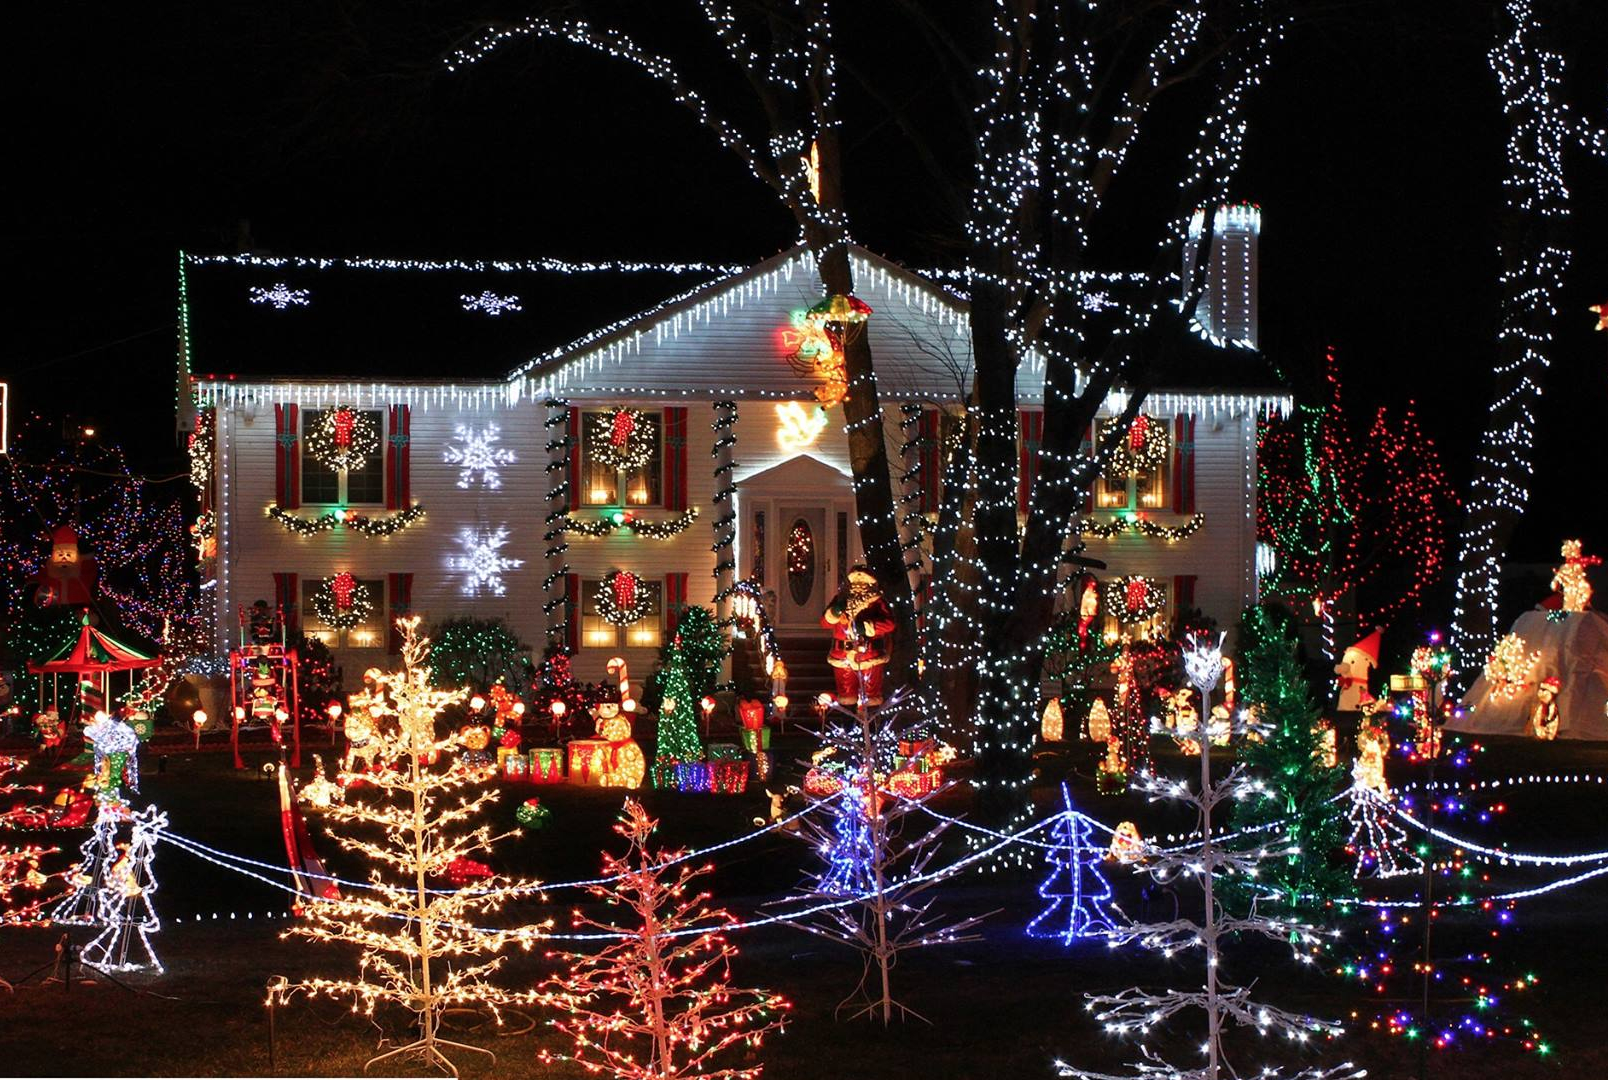 St George Ontario Decorated for Christmas in October to help terminally ill 7year old Evan Leversage